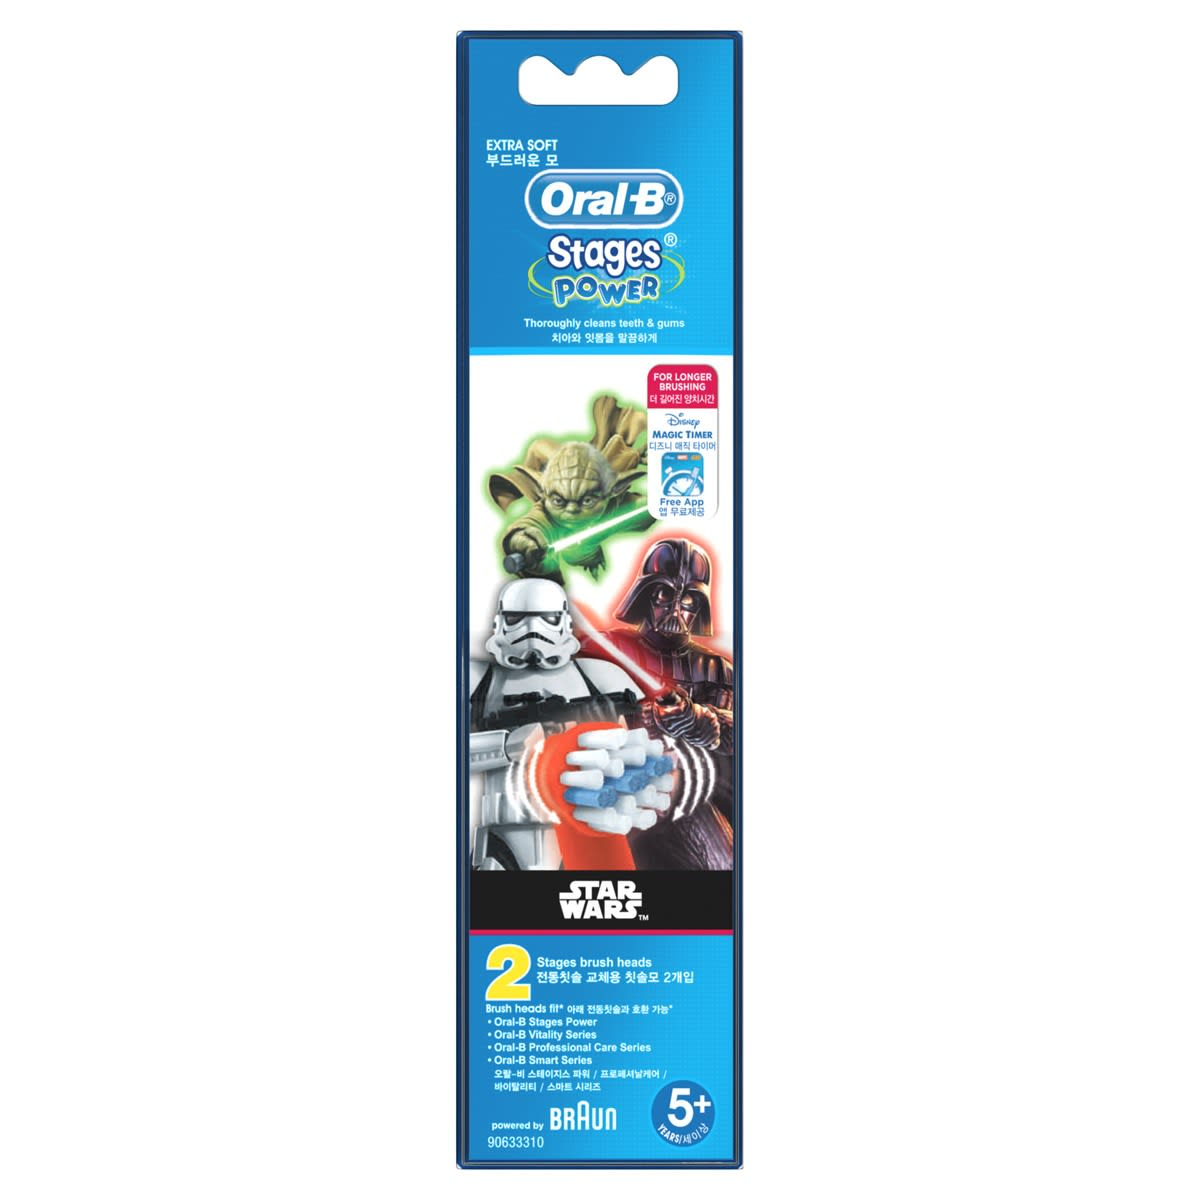 Oral-B Stages Power Brush Set Refill (Star Wars)